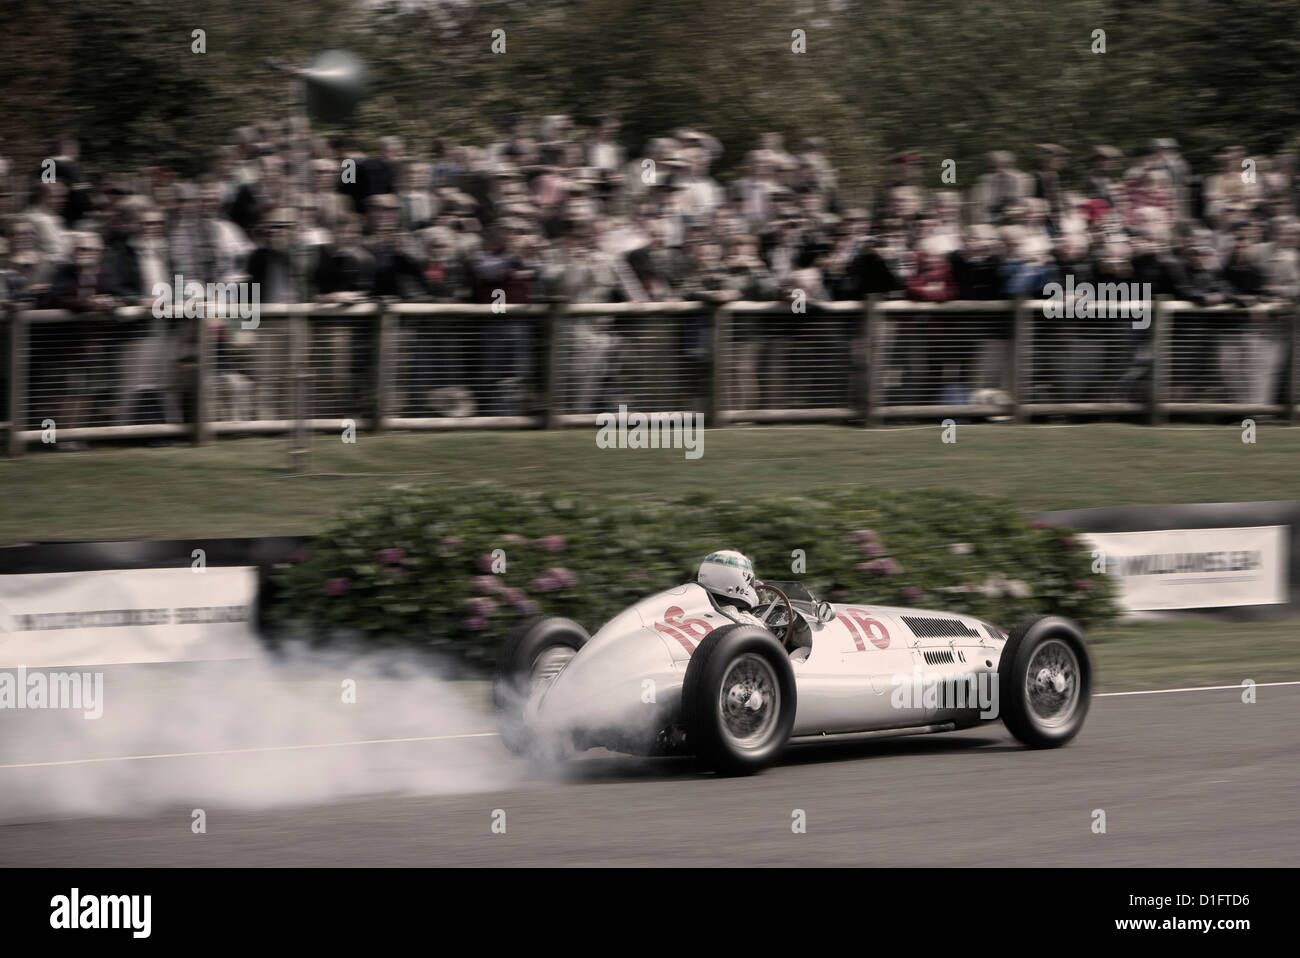 Mercedes Benz W165 Silver Arrow GP car at Goodwood Revival. Paul Stewart driving - Stock Image